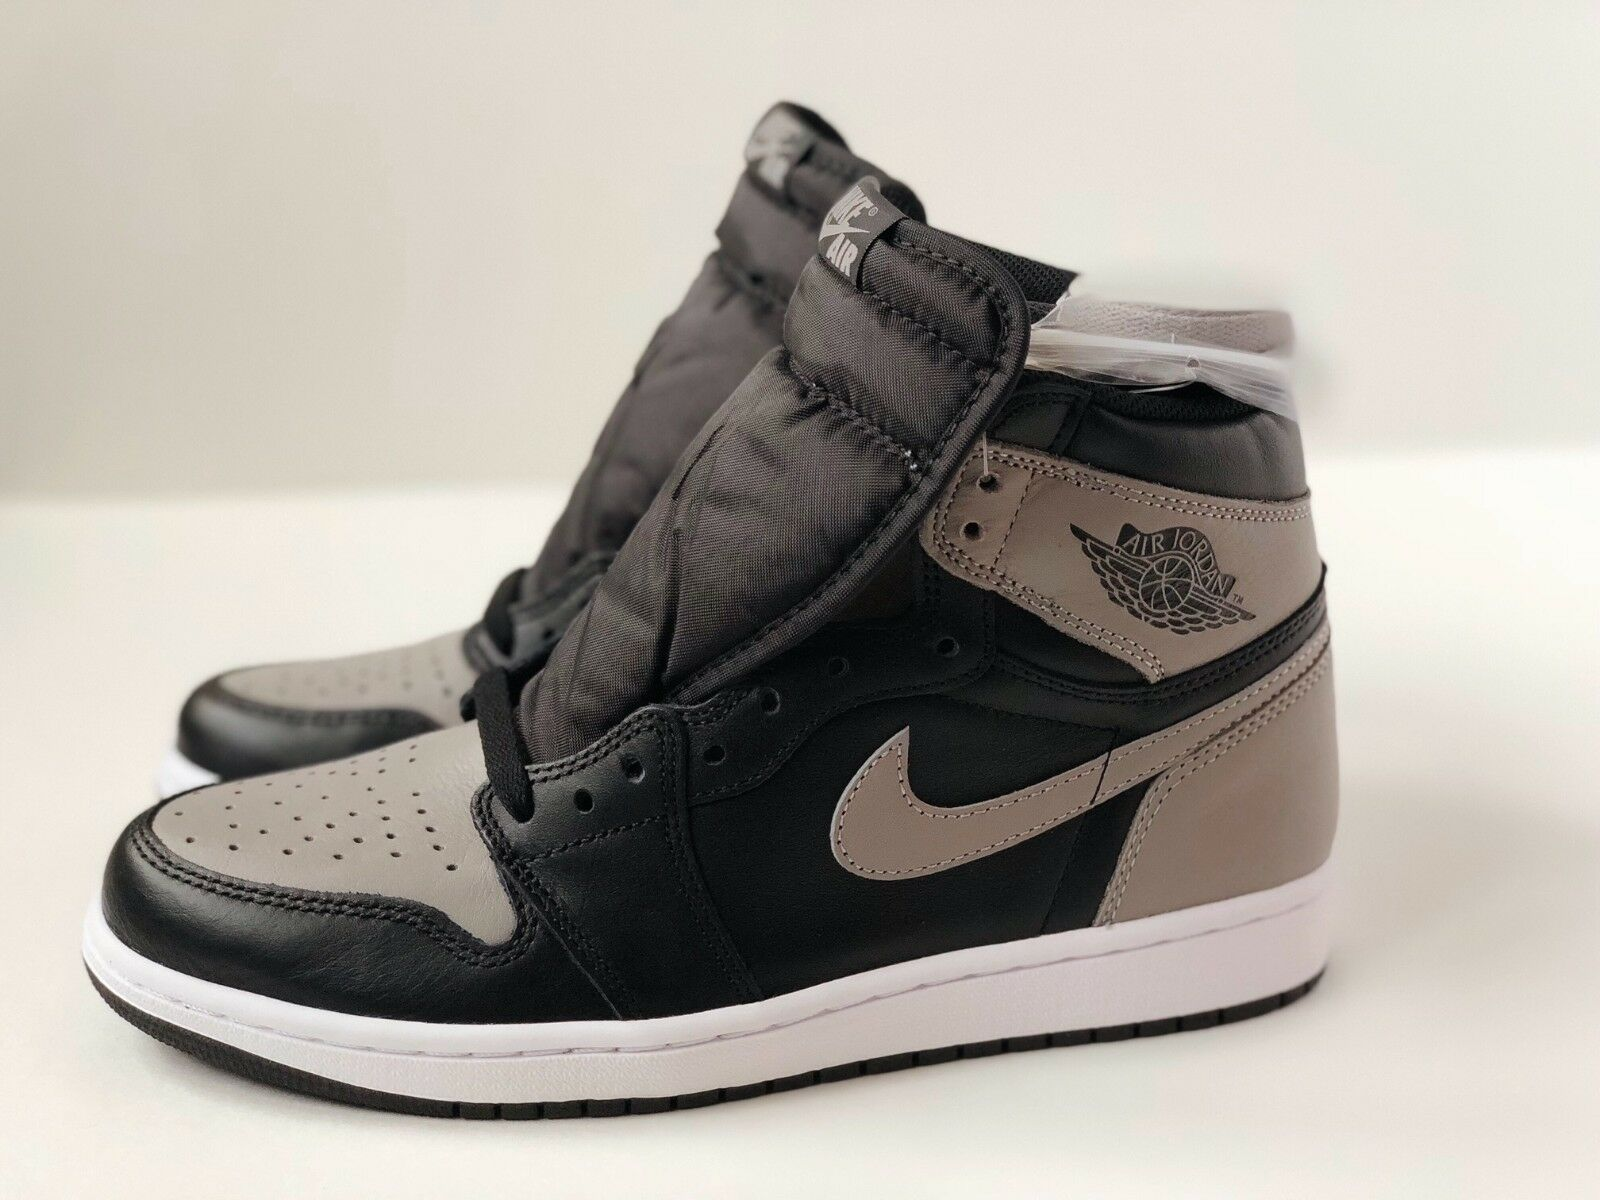 NIKE AIR JORDAN 1 Price reduction SHADOW RETRO I BLACK BRED TOE GREY LOT 555088-013 The latest discount shoes for men and women